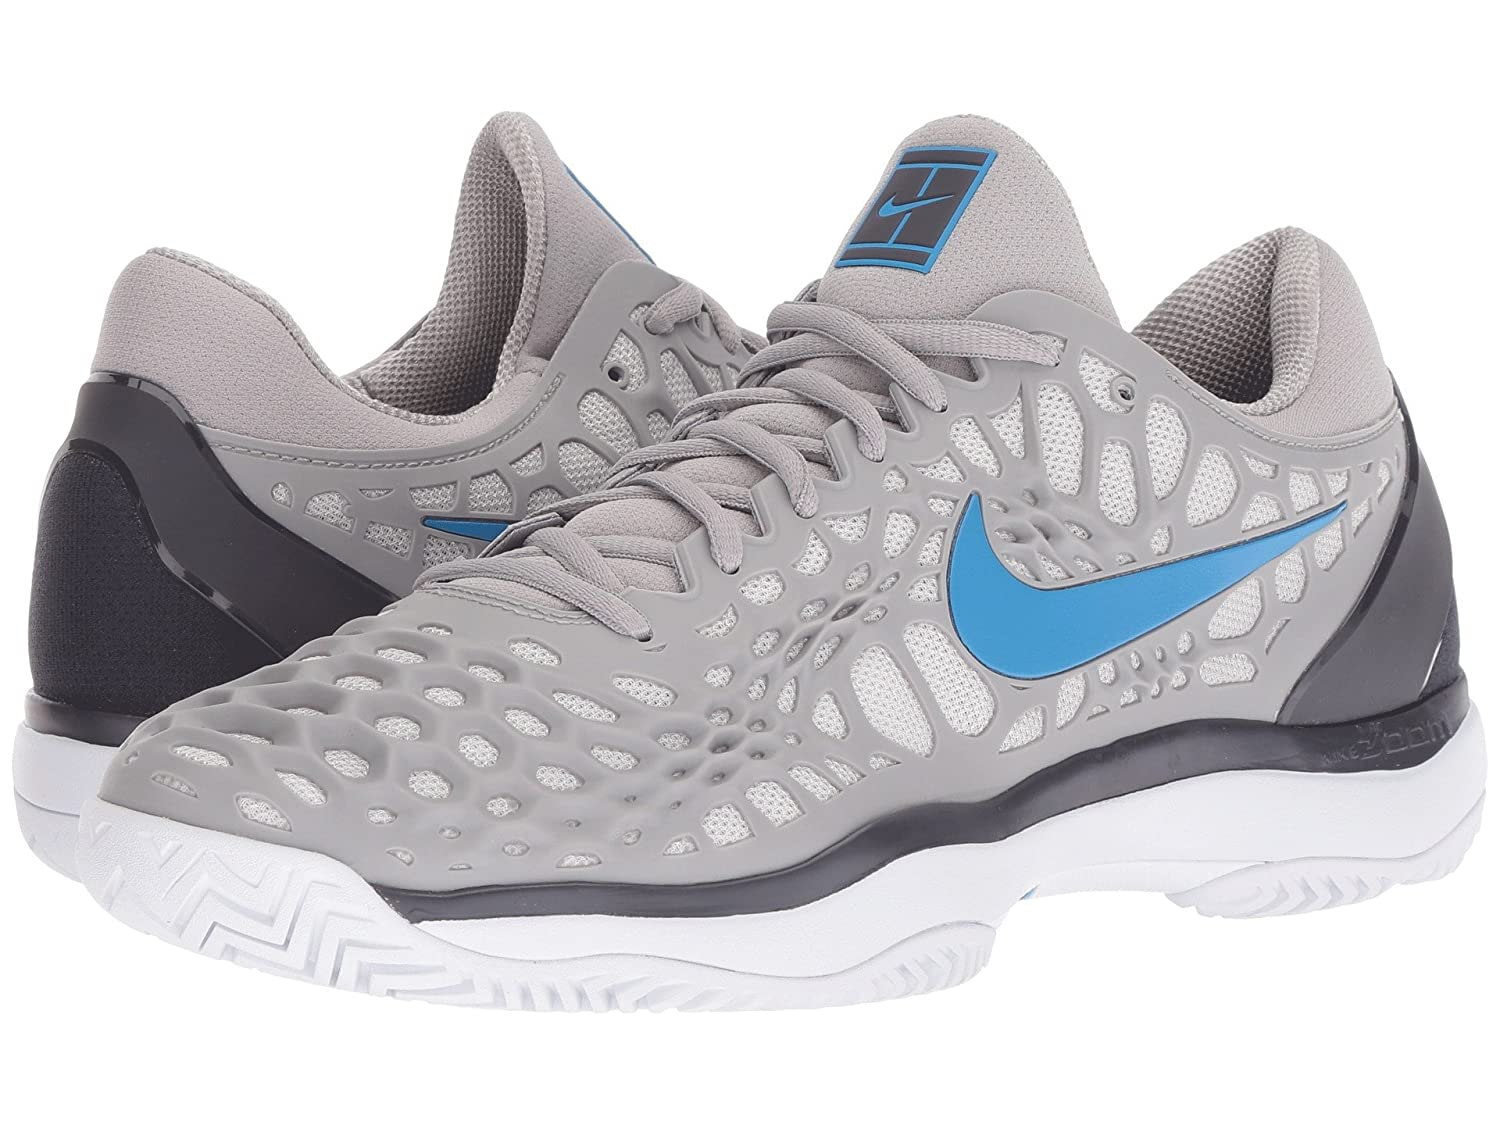 Nike 9 Mens Zoom Cage 3 Tennis Shoes B0789RKMJ4 9 Nike D(M) US|Atmosphere Grey/Photo Blue-gridiron a0693a